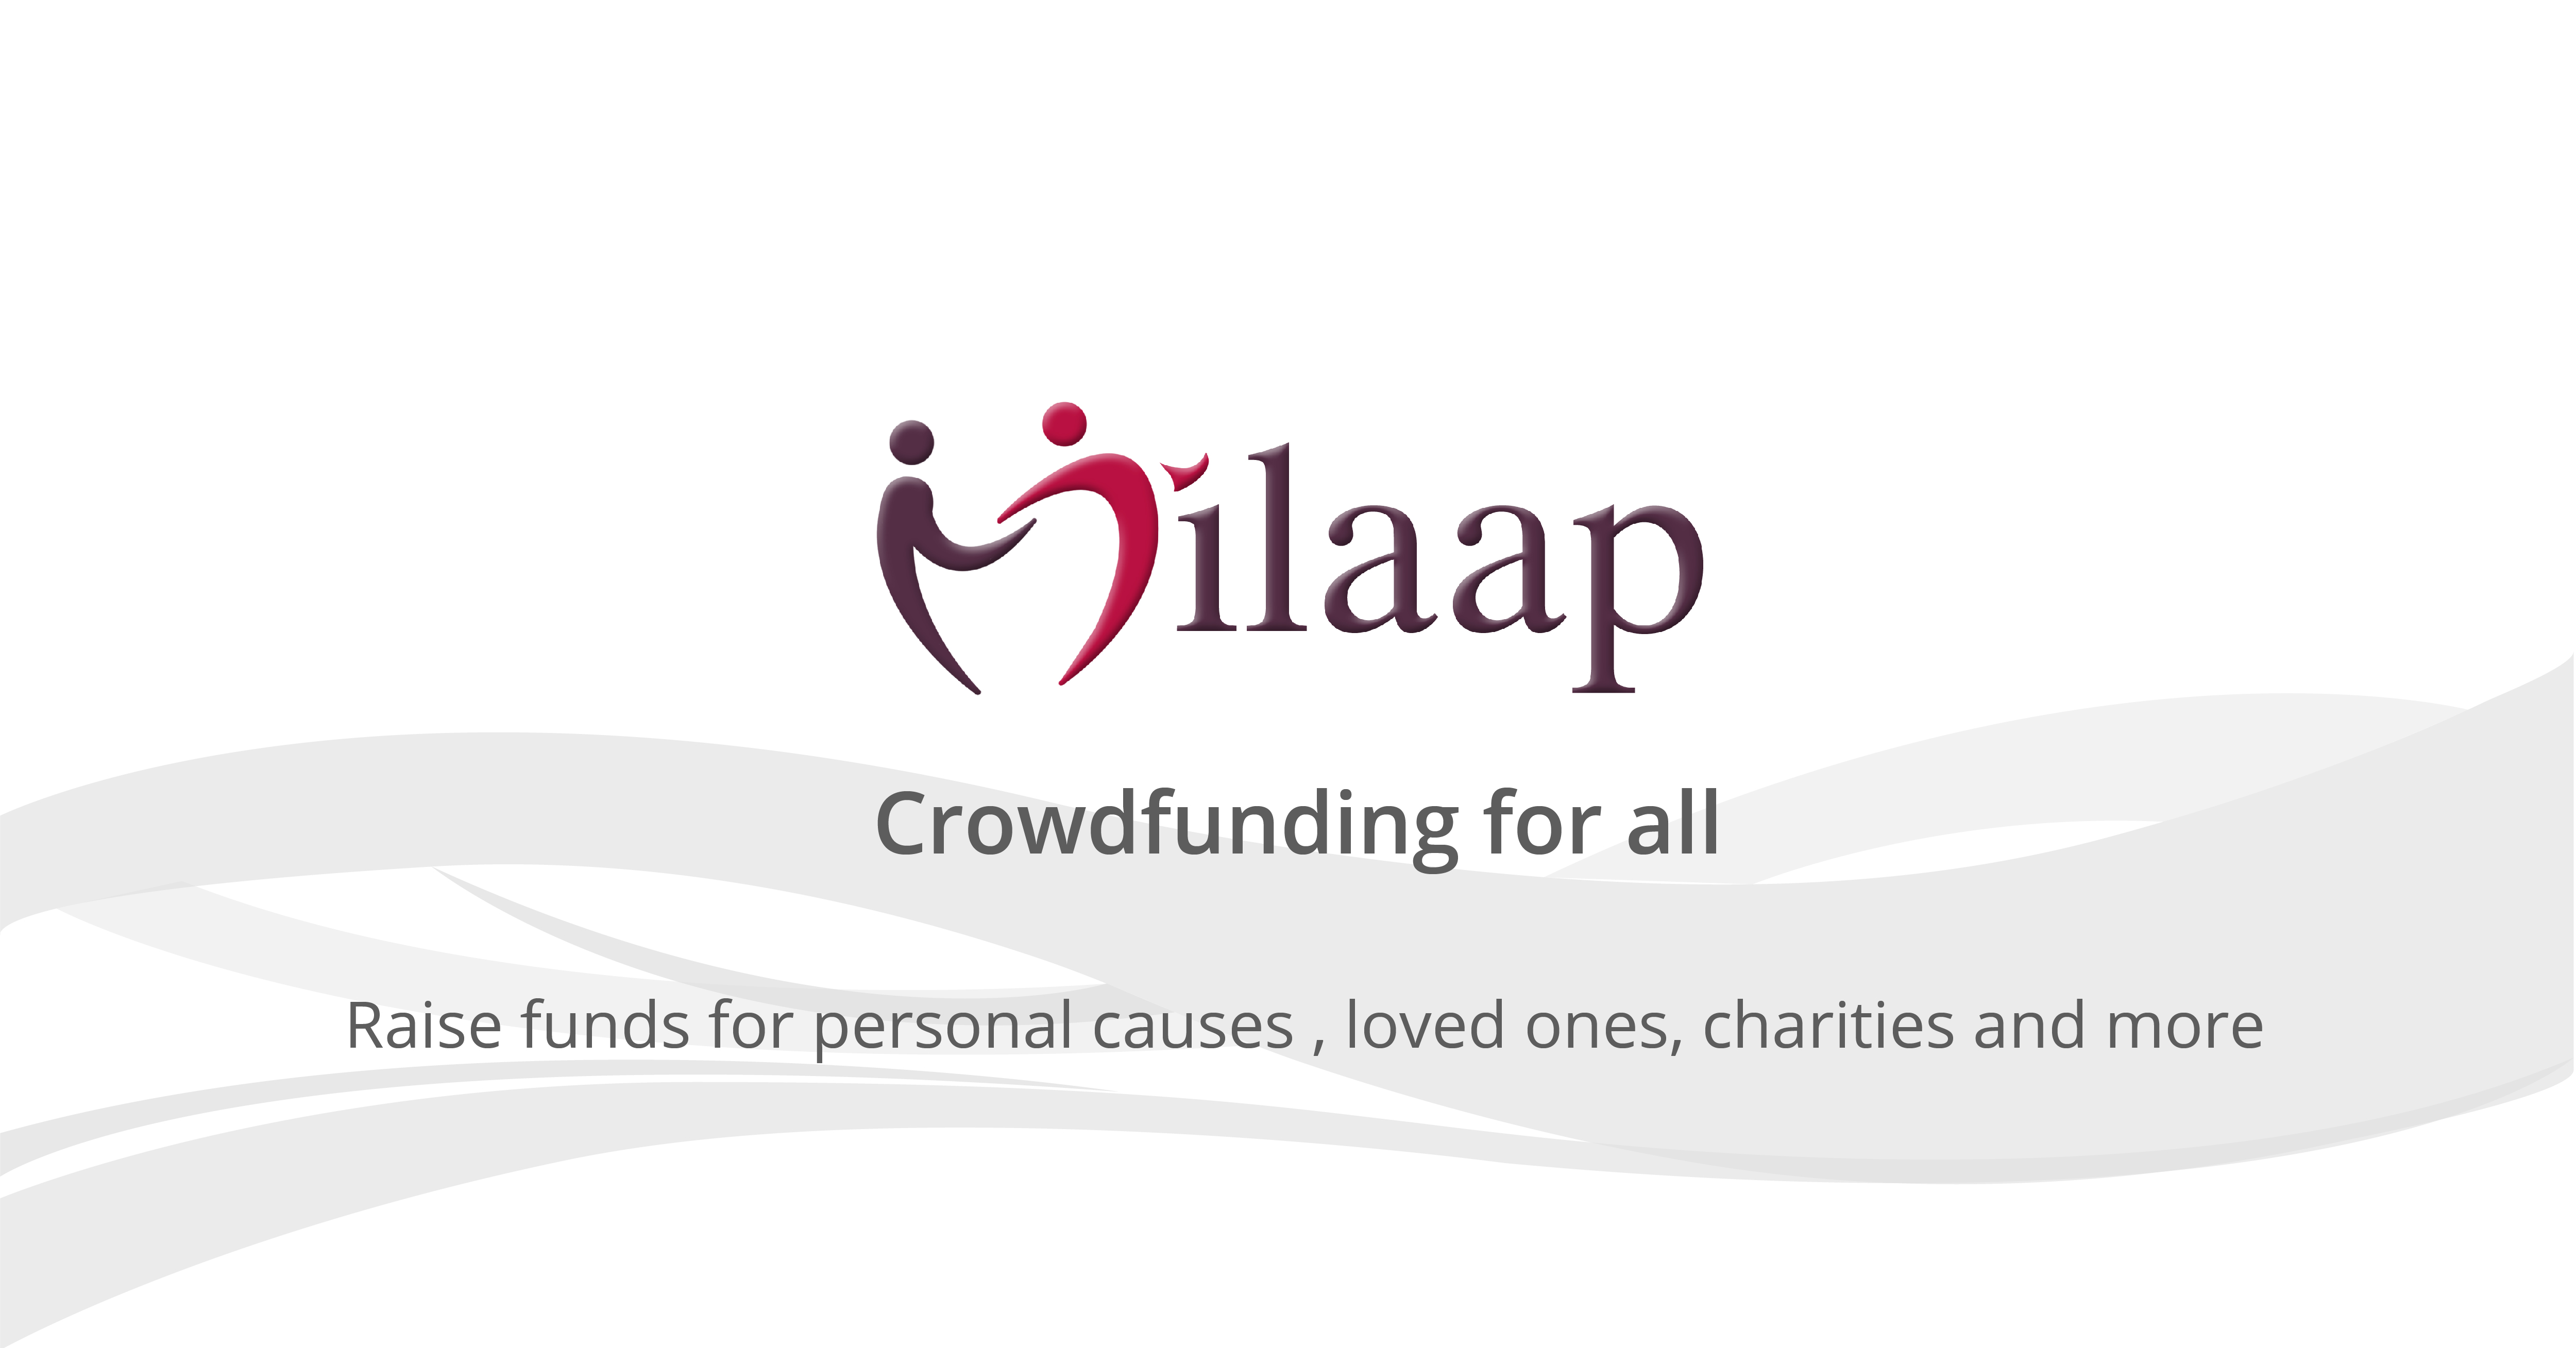 Crowdfunding India | Largest Crowdfunding Platform In India | Milaap